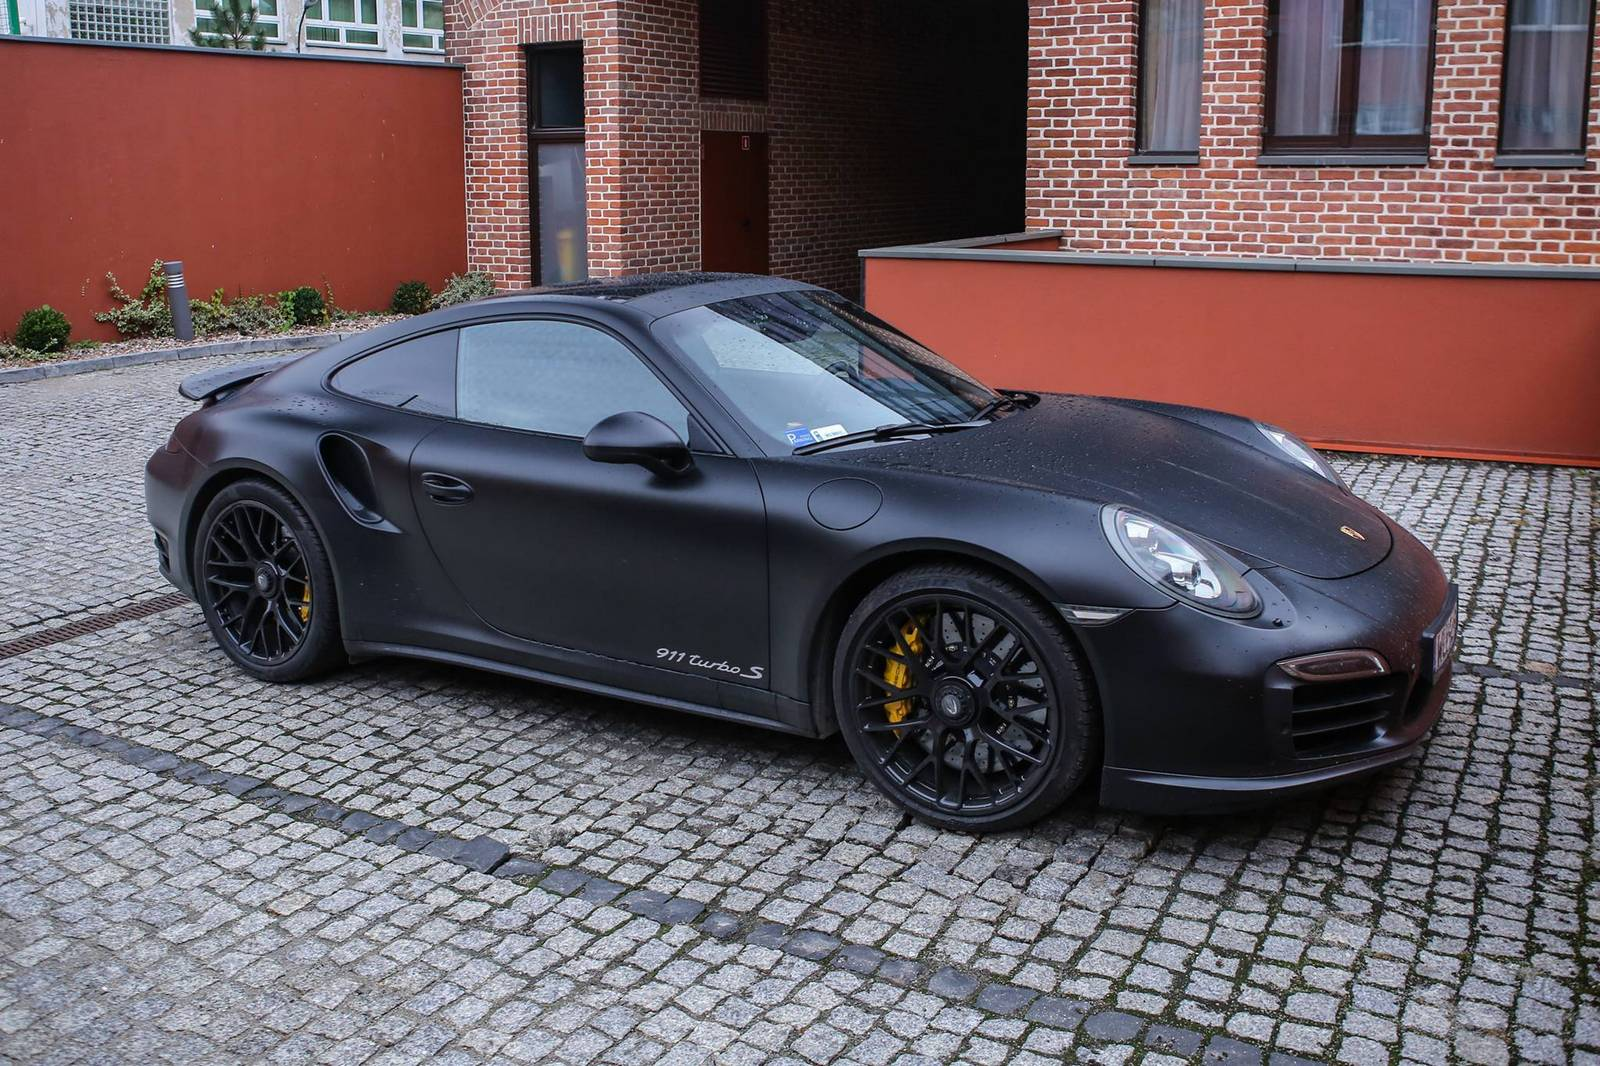 matte black porsche 911 turbo s 1 - Porsche 911 2015 Black